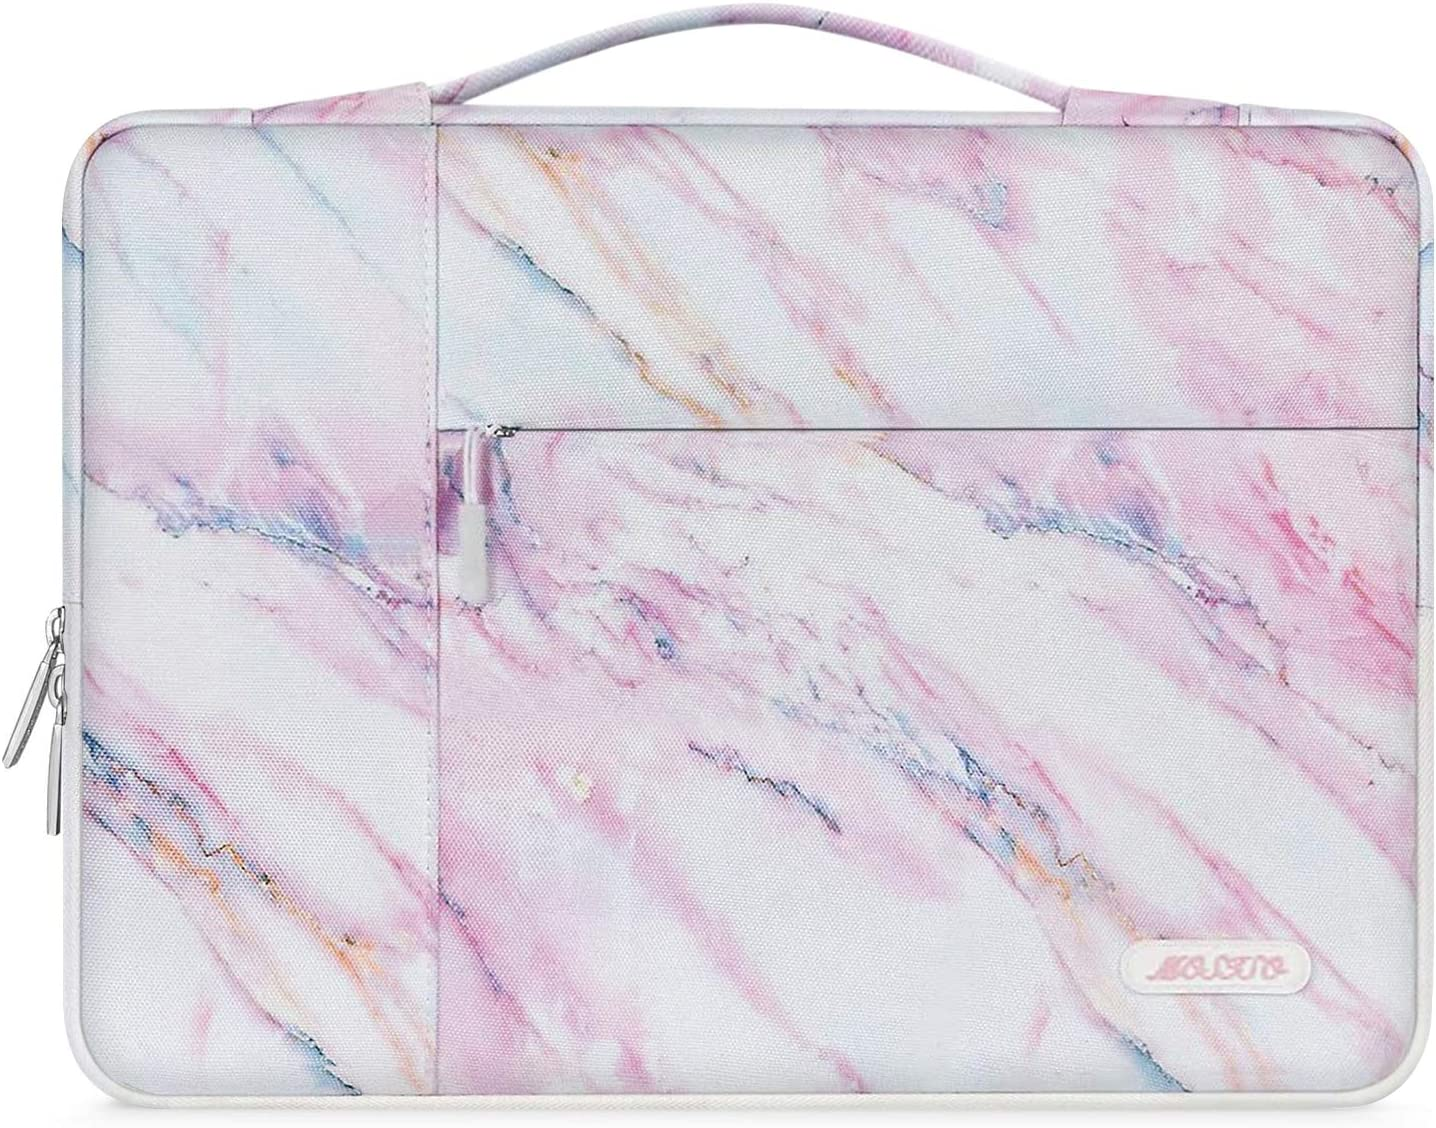 MOSISO Laptop Sleeve Compatible with 13-13.3 inch MacBook Air, MacBook Pro, Notebook Computer, Polyester Pattern Multifunctional Briefcase Carrying Bag, Pink Marble